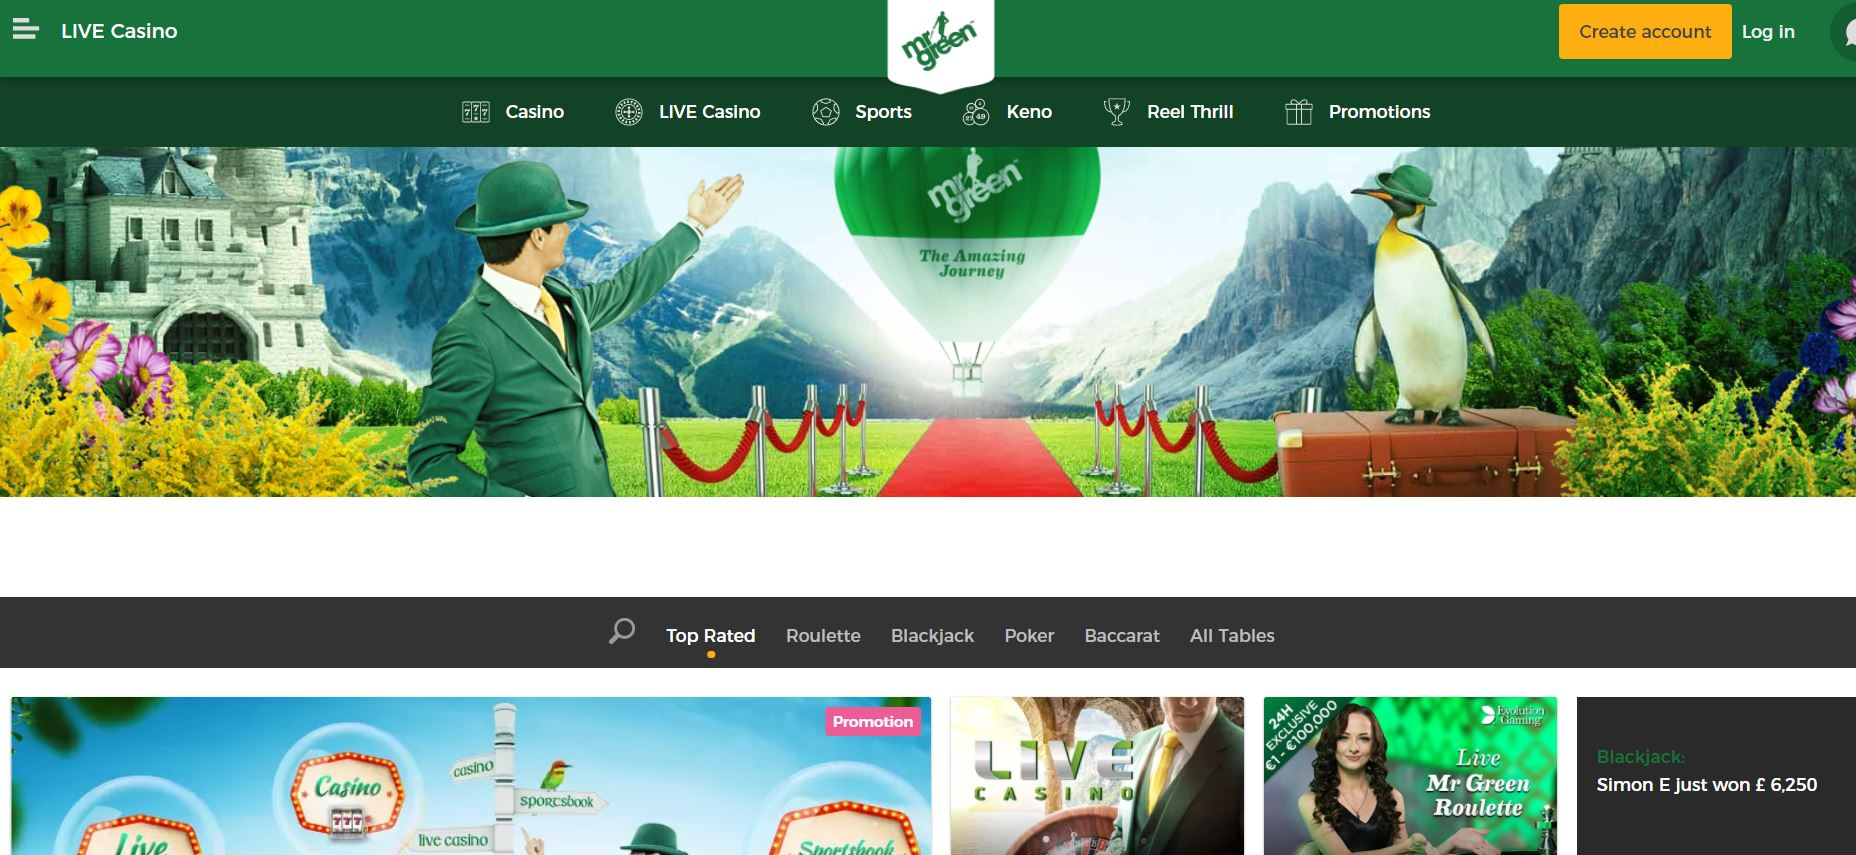 mrgreen.com casino